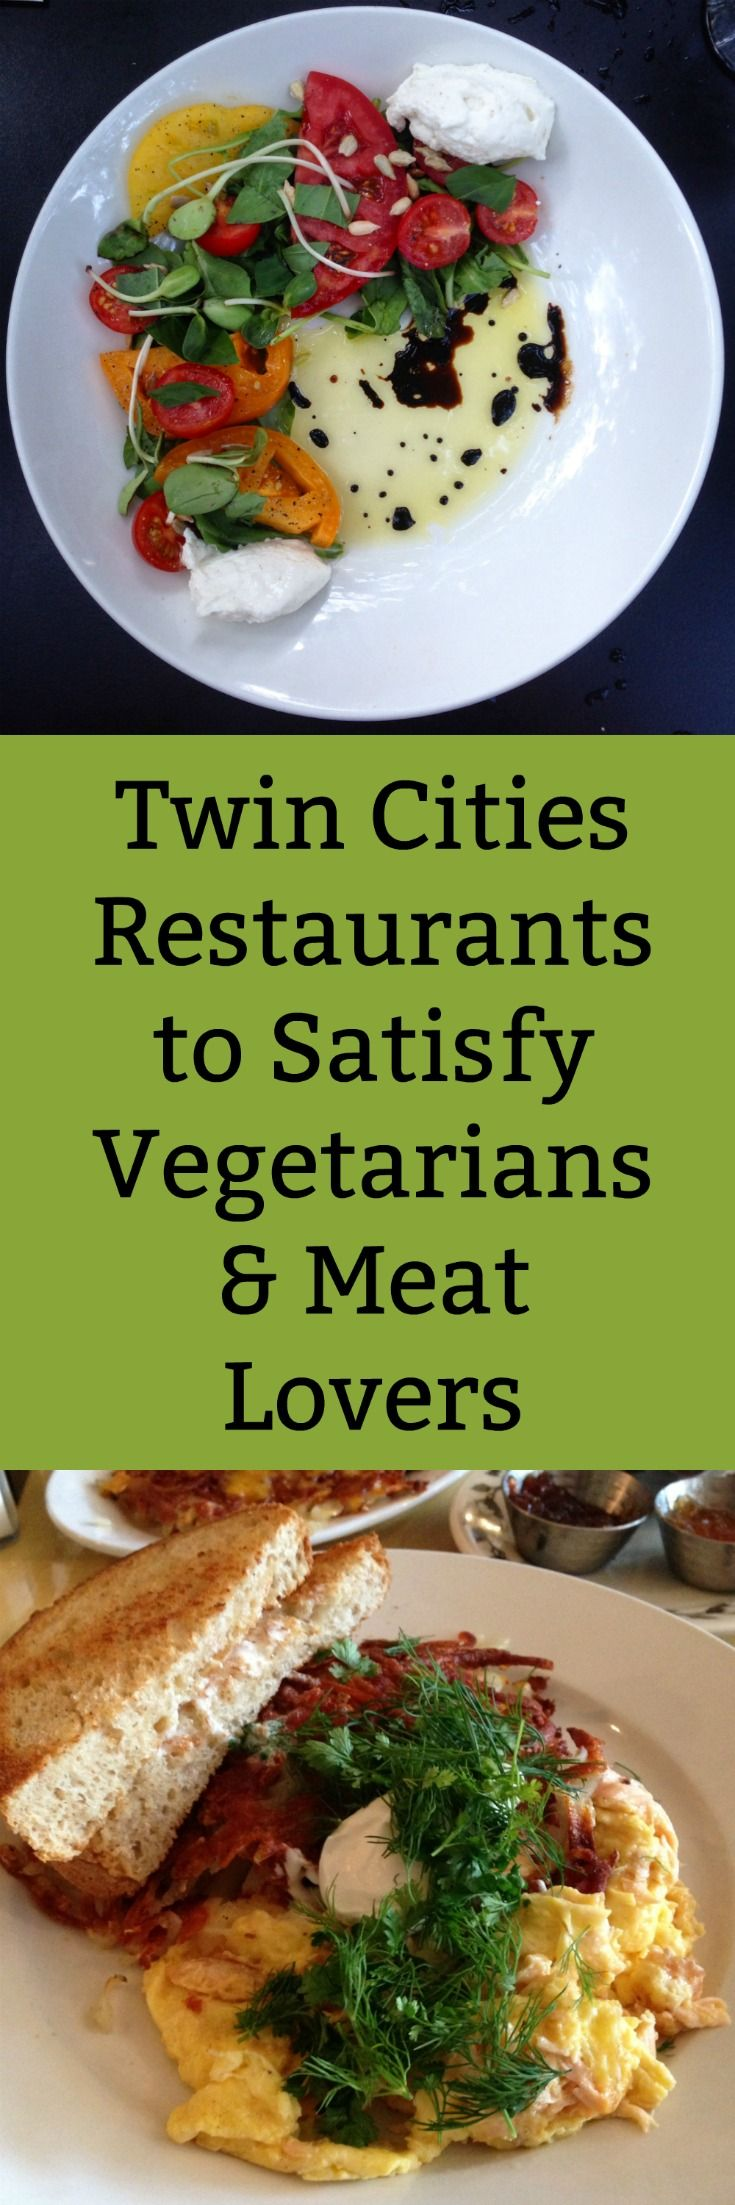 Twin Cities Restaurants to Satisfy Vegetarians & Meat Lovers